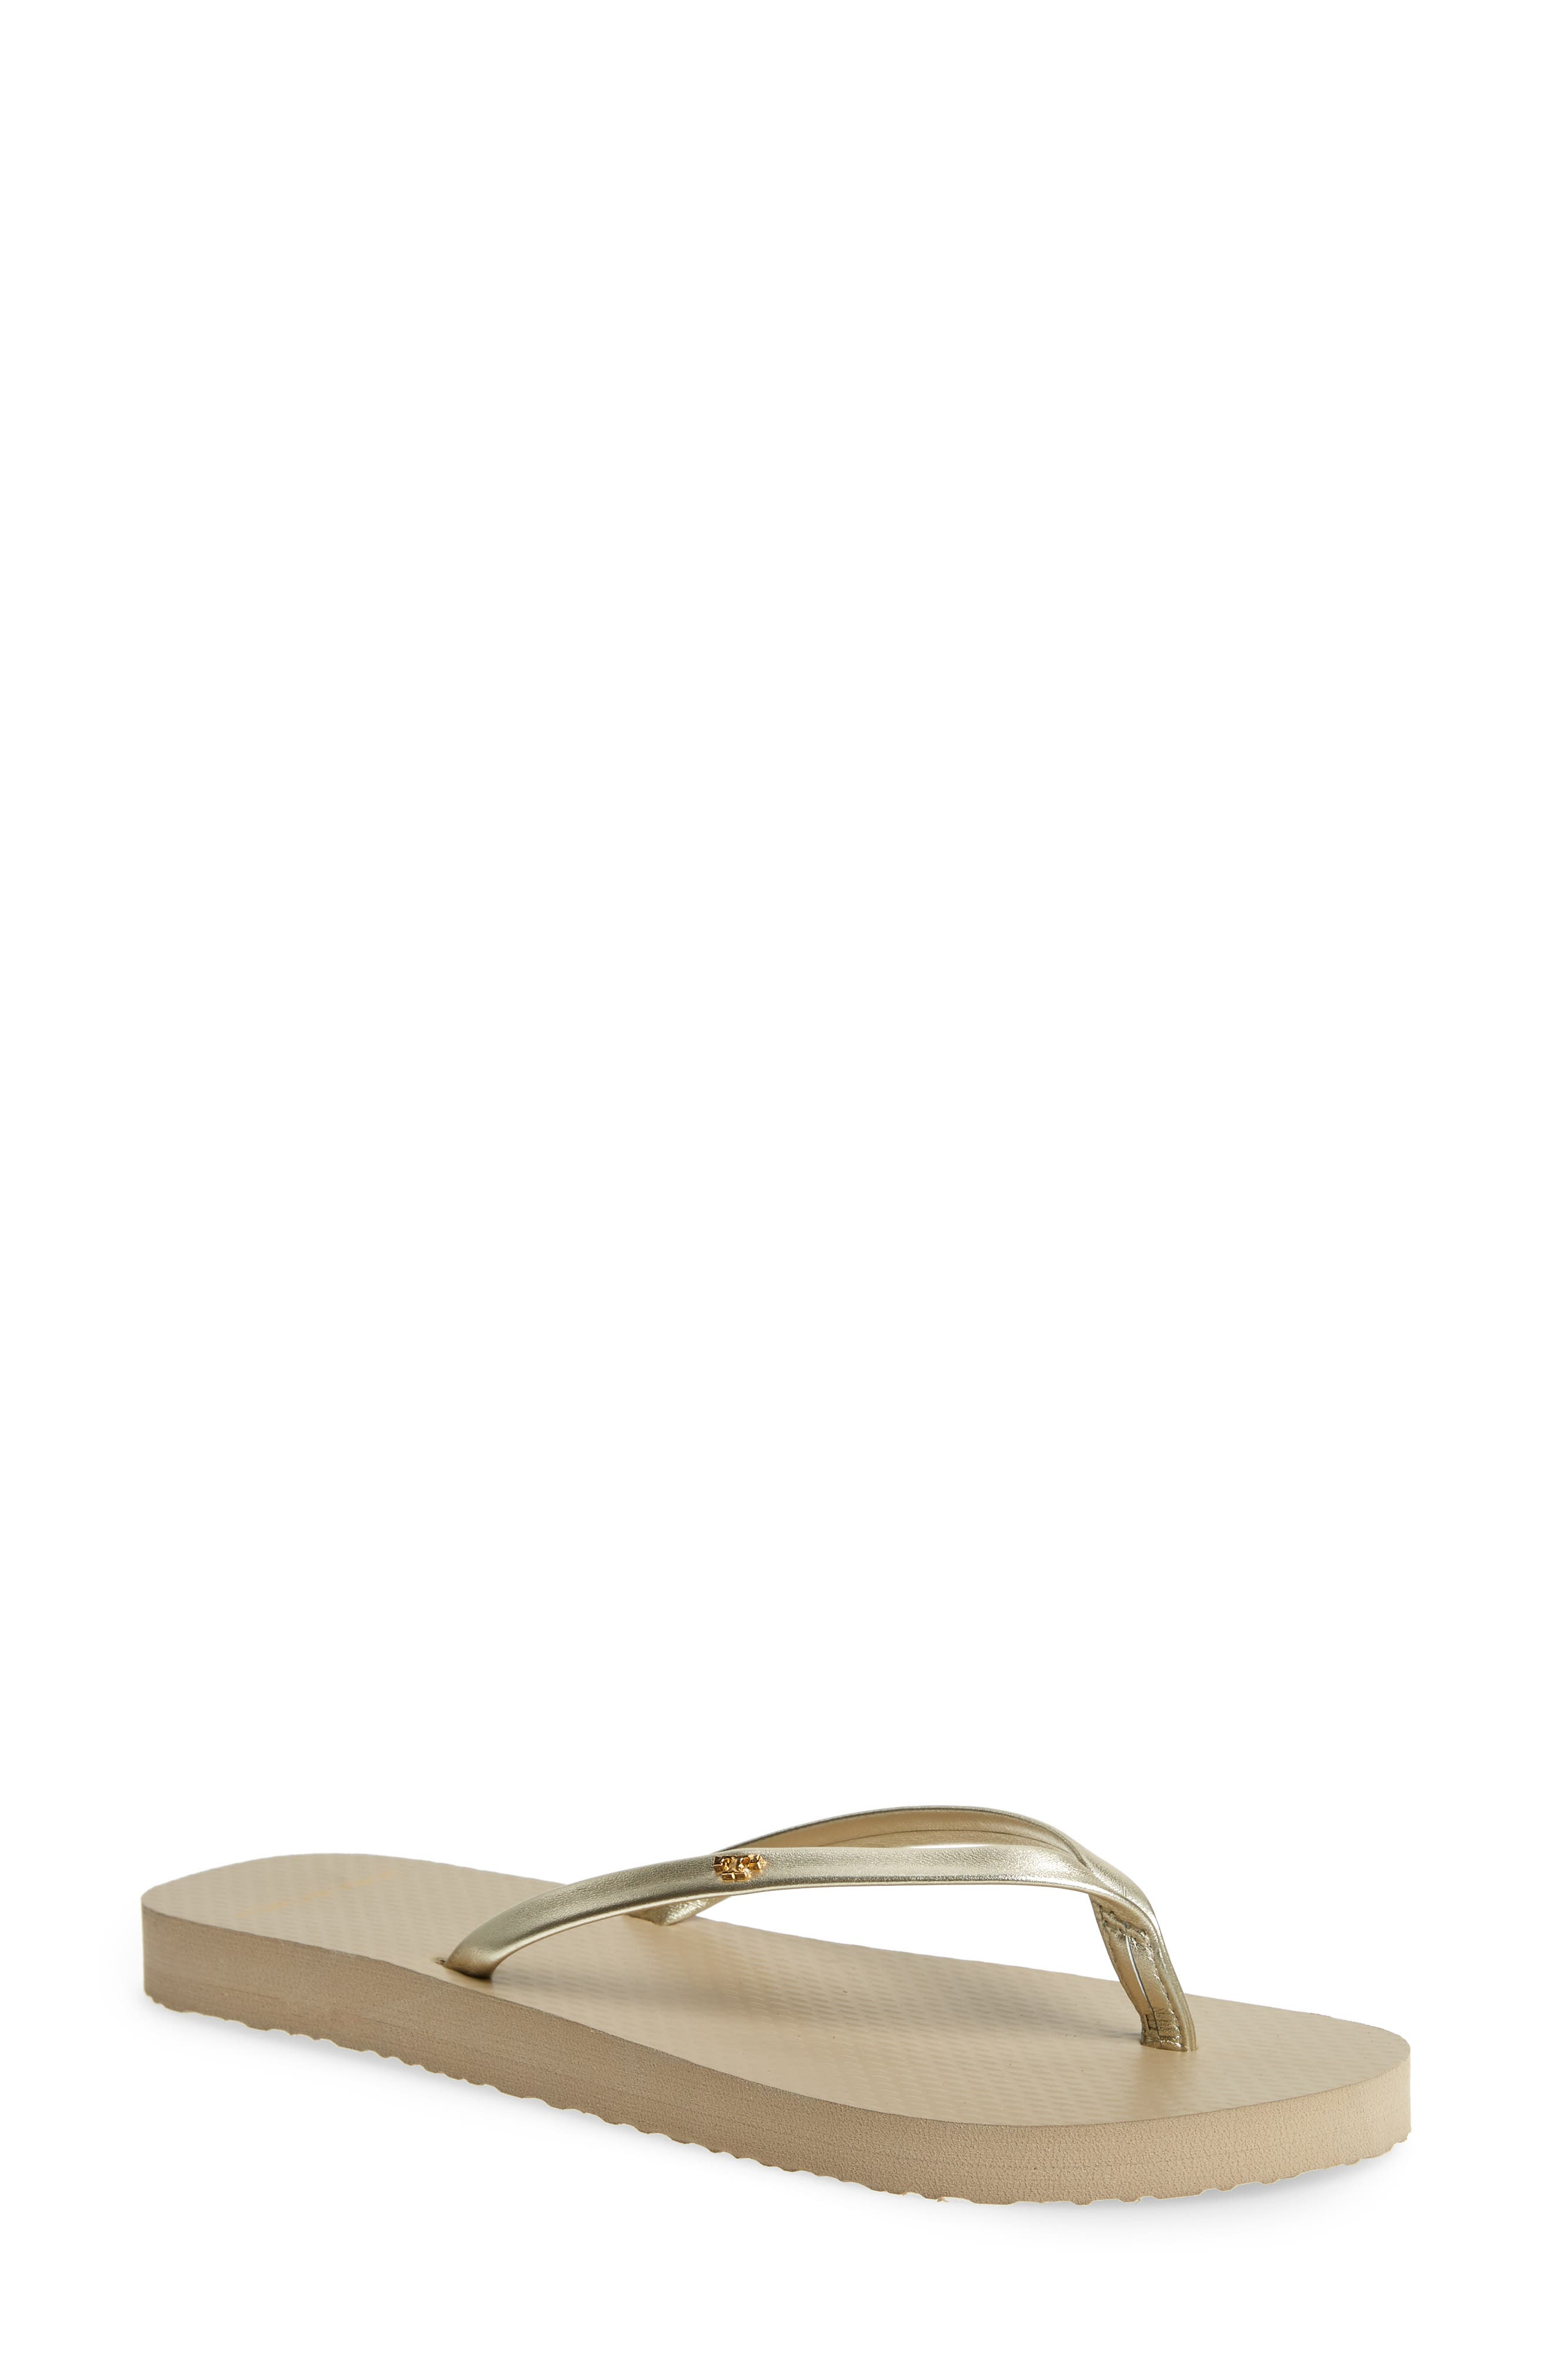 TORY BURCH, Logo Metallic Flip Flop, Main thumbnail 1, color, SPARK GOLD/ LIGHT TAUPE